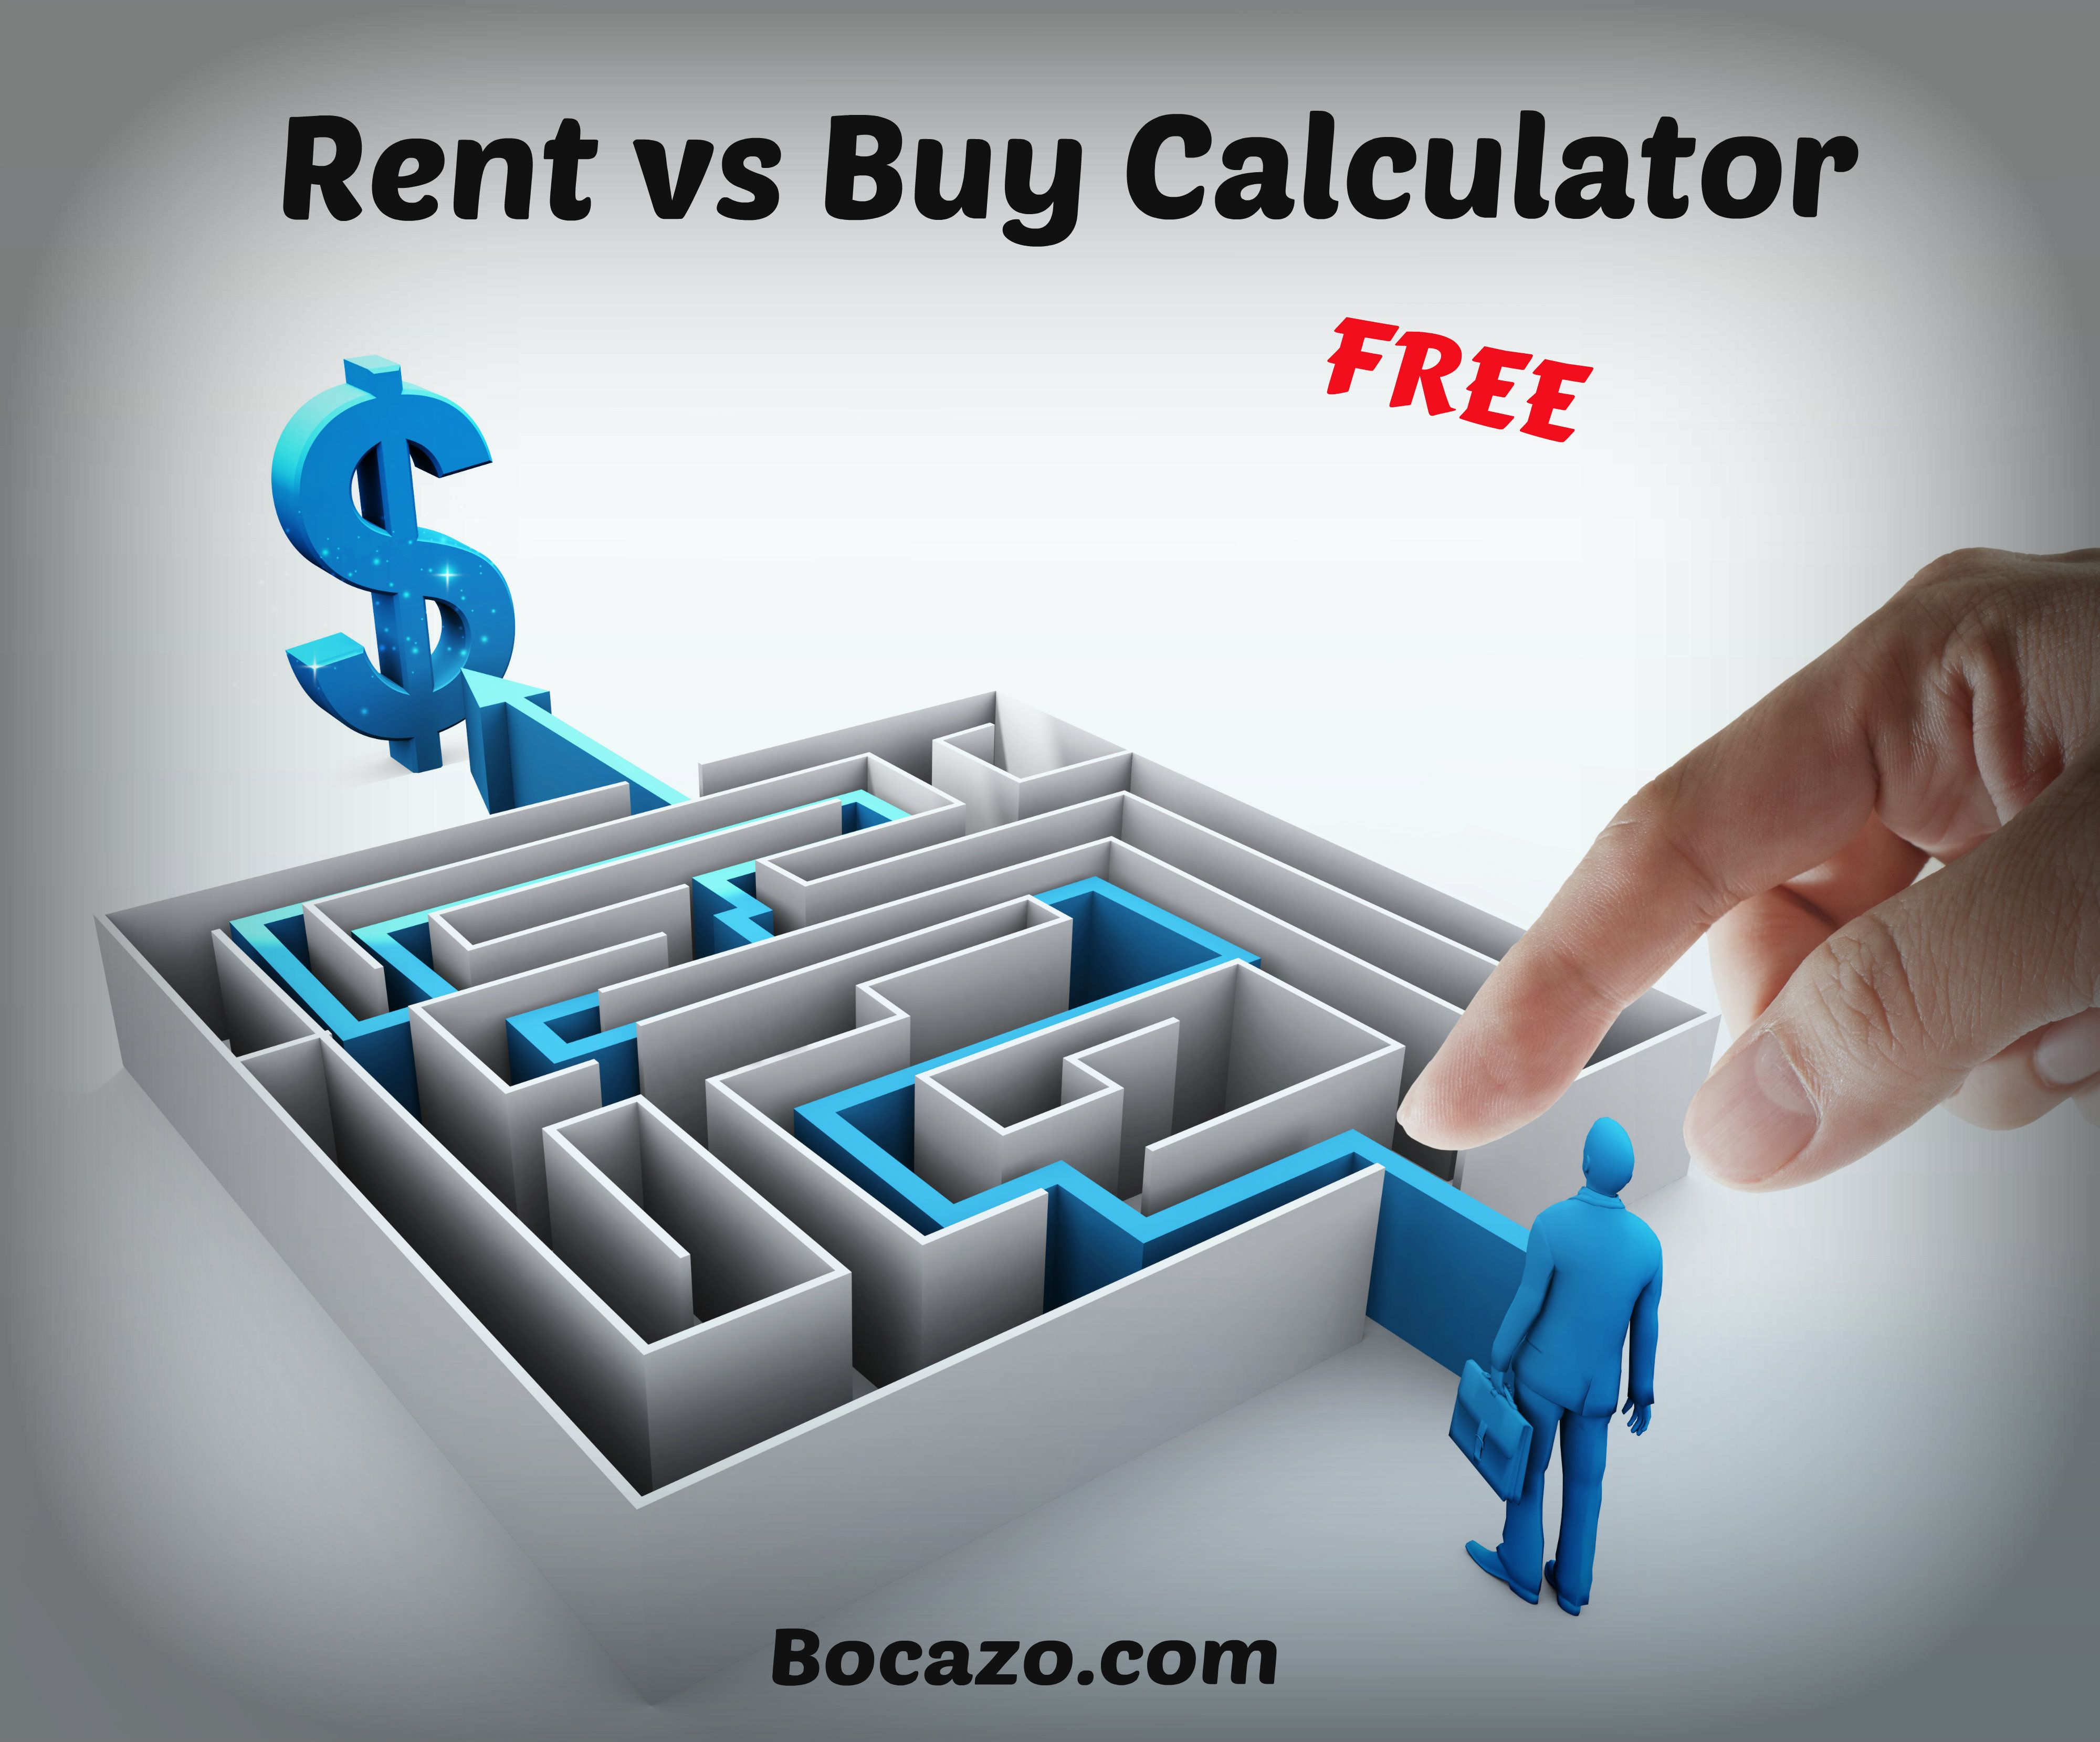 FREE Rent Vs Buy Calculator This calculator will help you